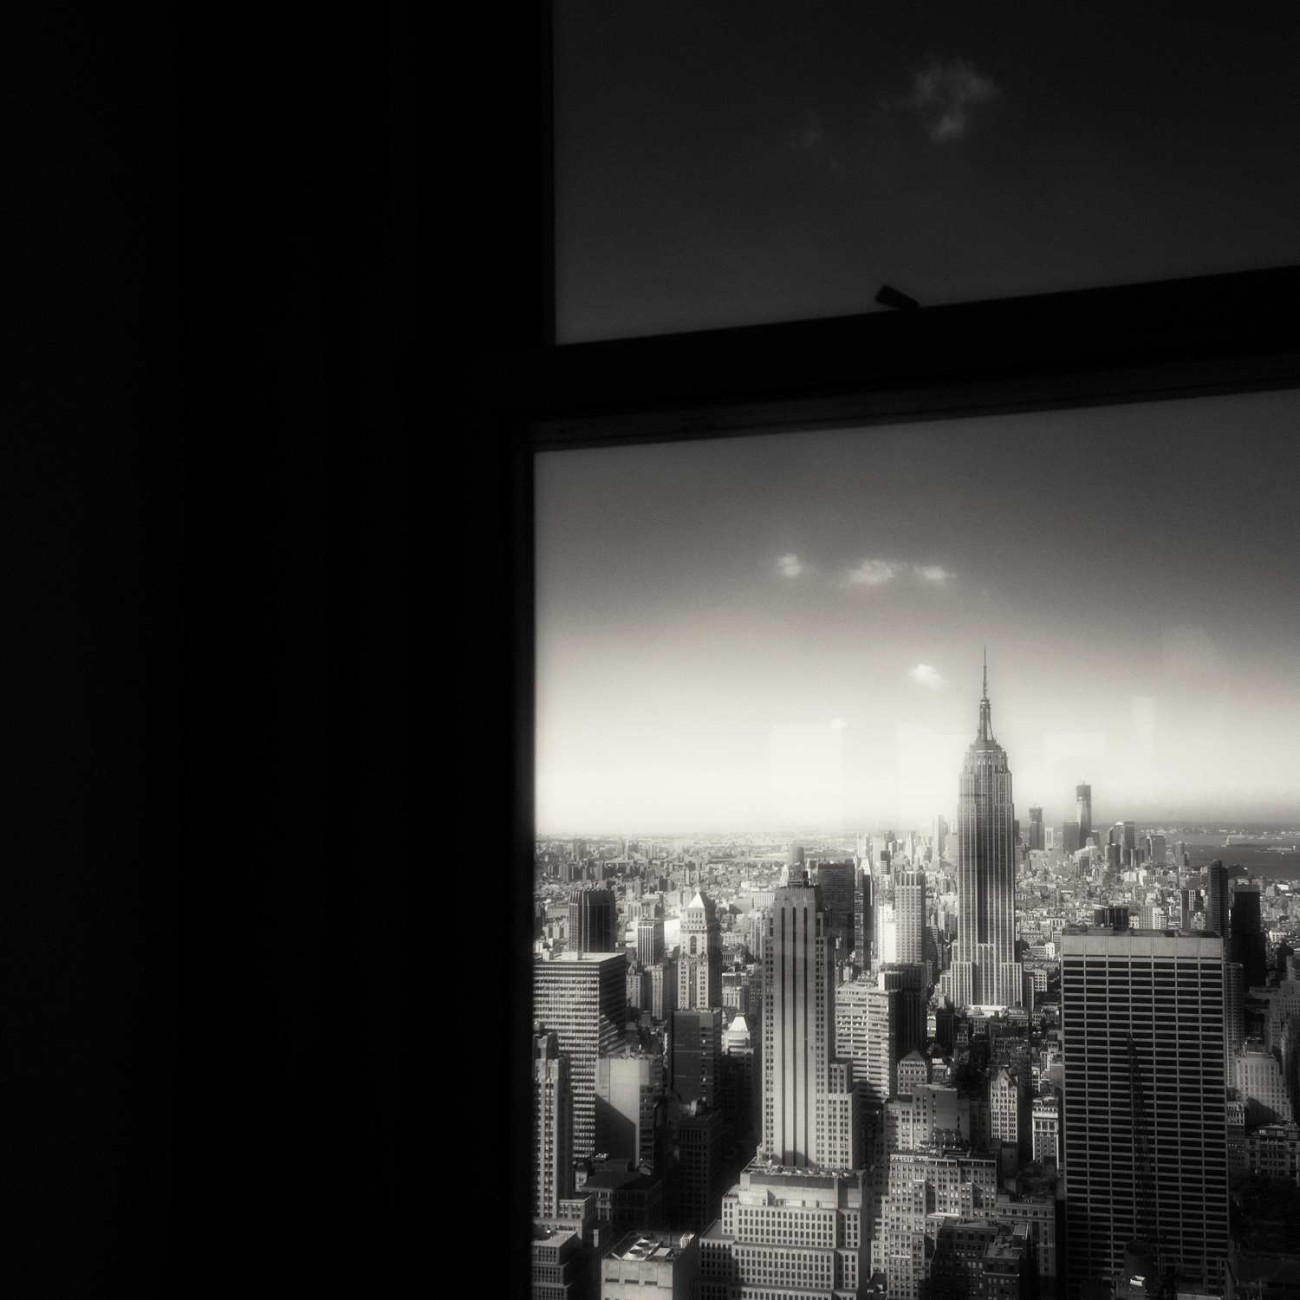 Empire State Building and window, New York, 2012